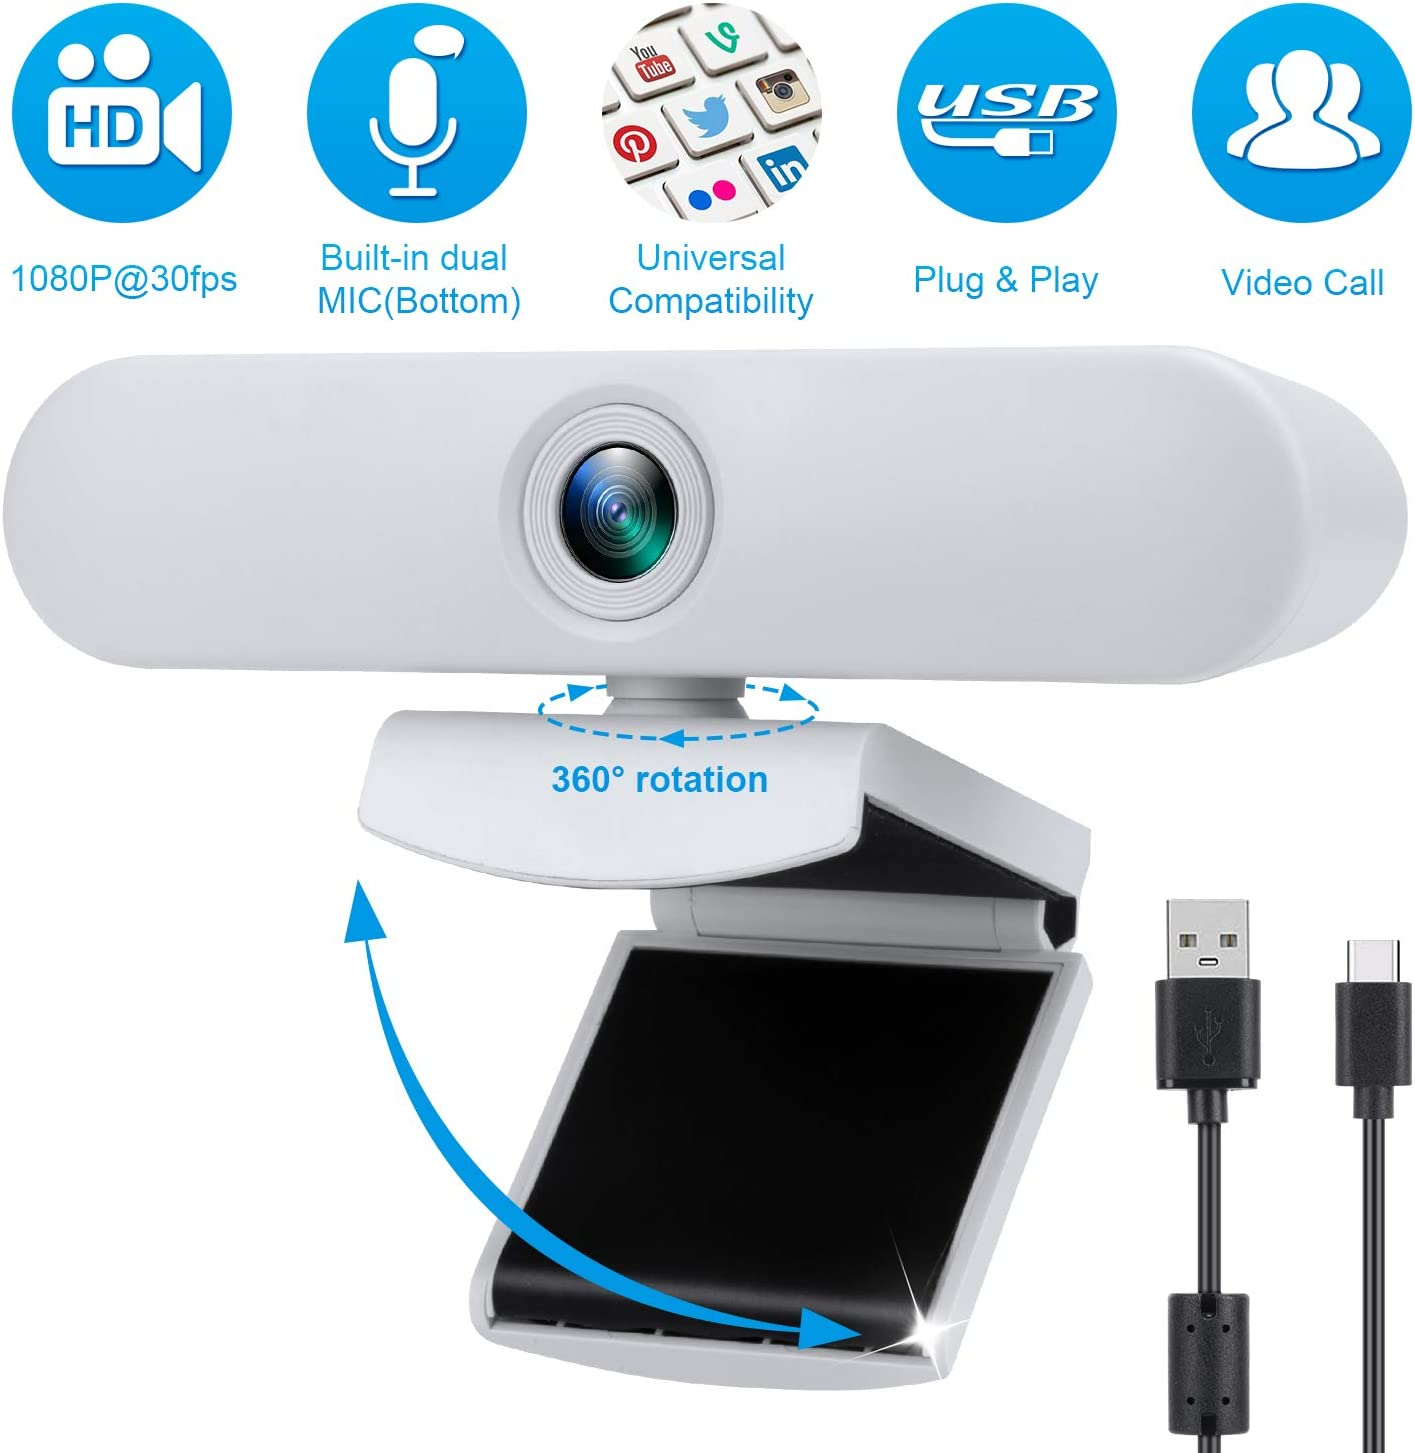 New Upgraded White Webcam with Dual Microphone, USB Computer 1080P HD Streaming Web Camera 360 Degree Rotatable for Desktop Laptop PC Mac with Flexible Rotatable Clip